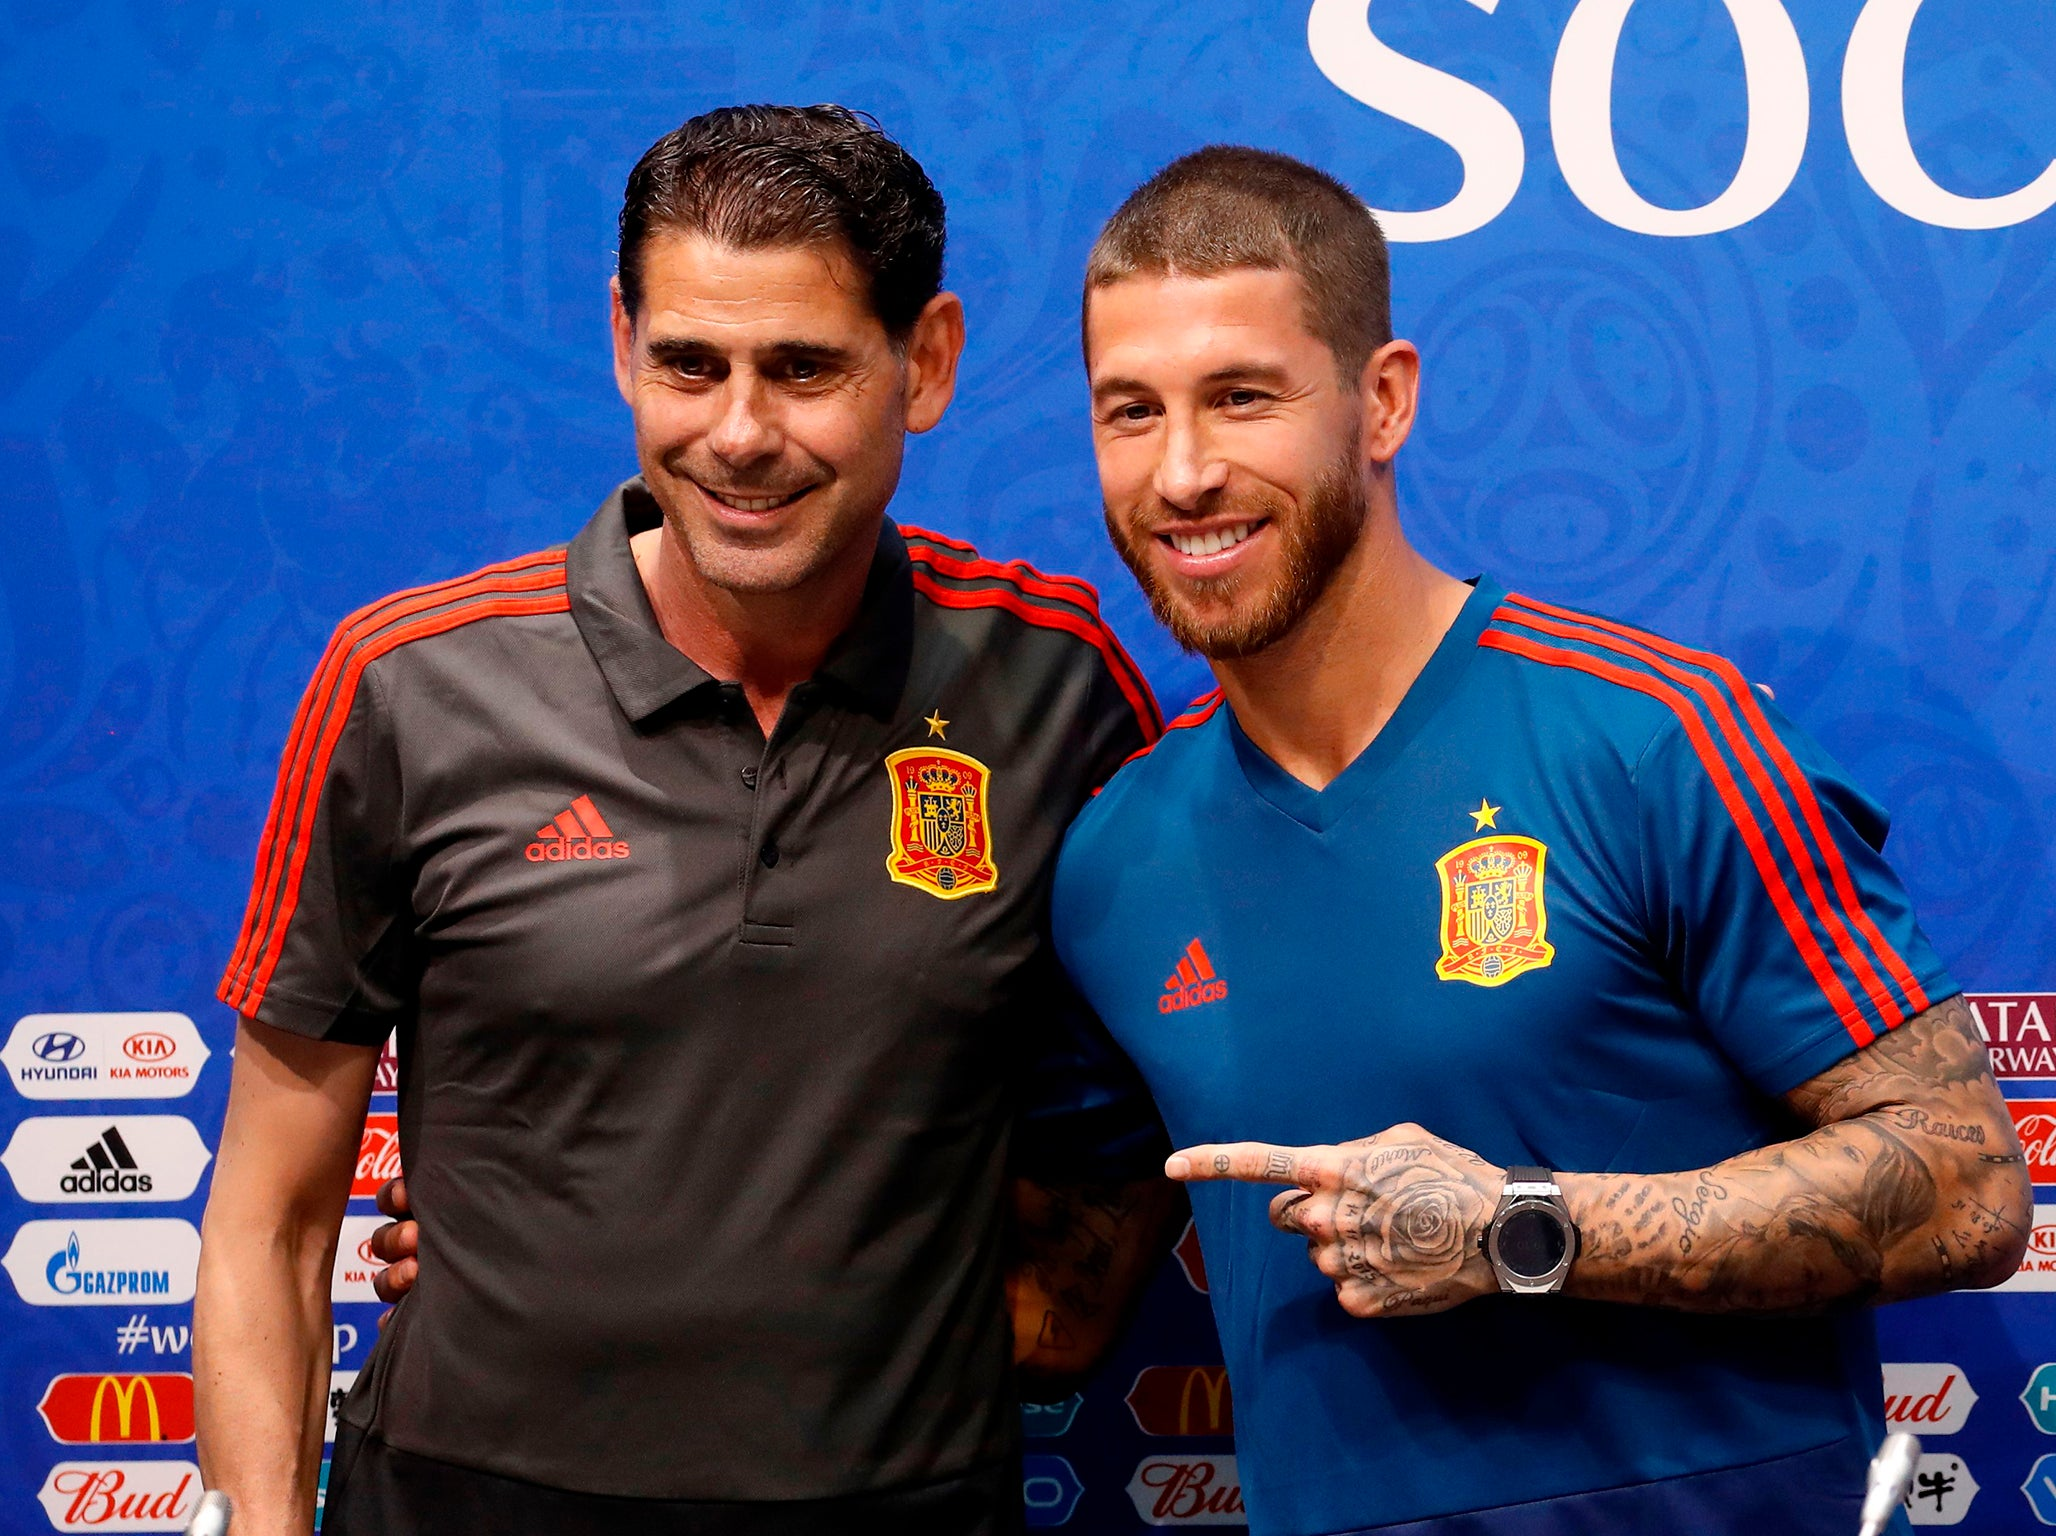 World Cup  Sergio Ramos Insists Spain Camp Remains United Ahead Of Crunch Match Against Portugal The Independent